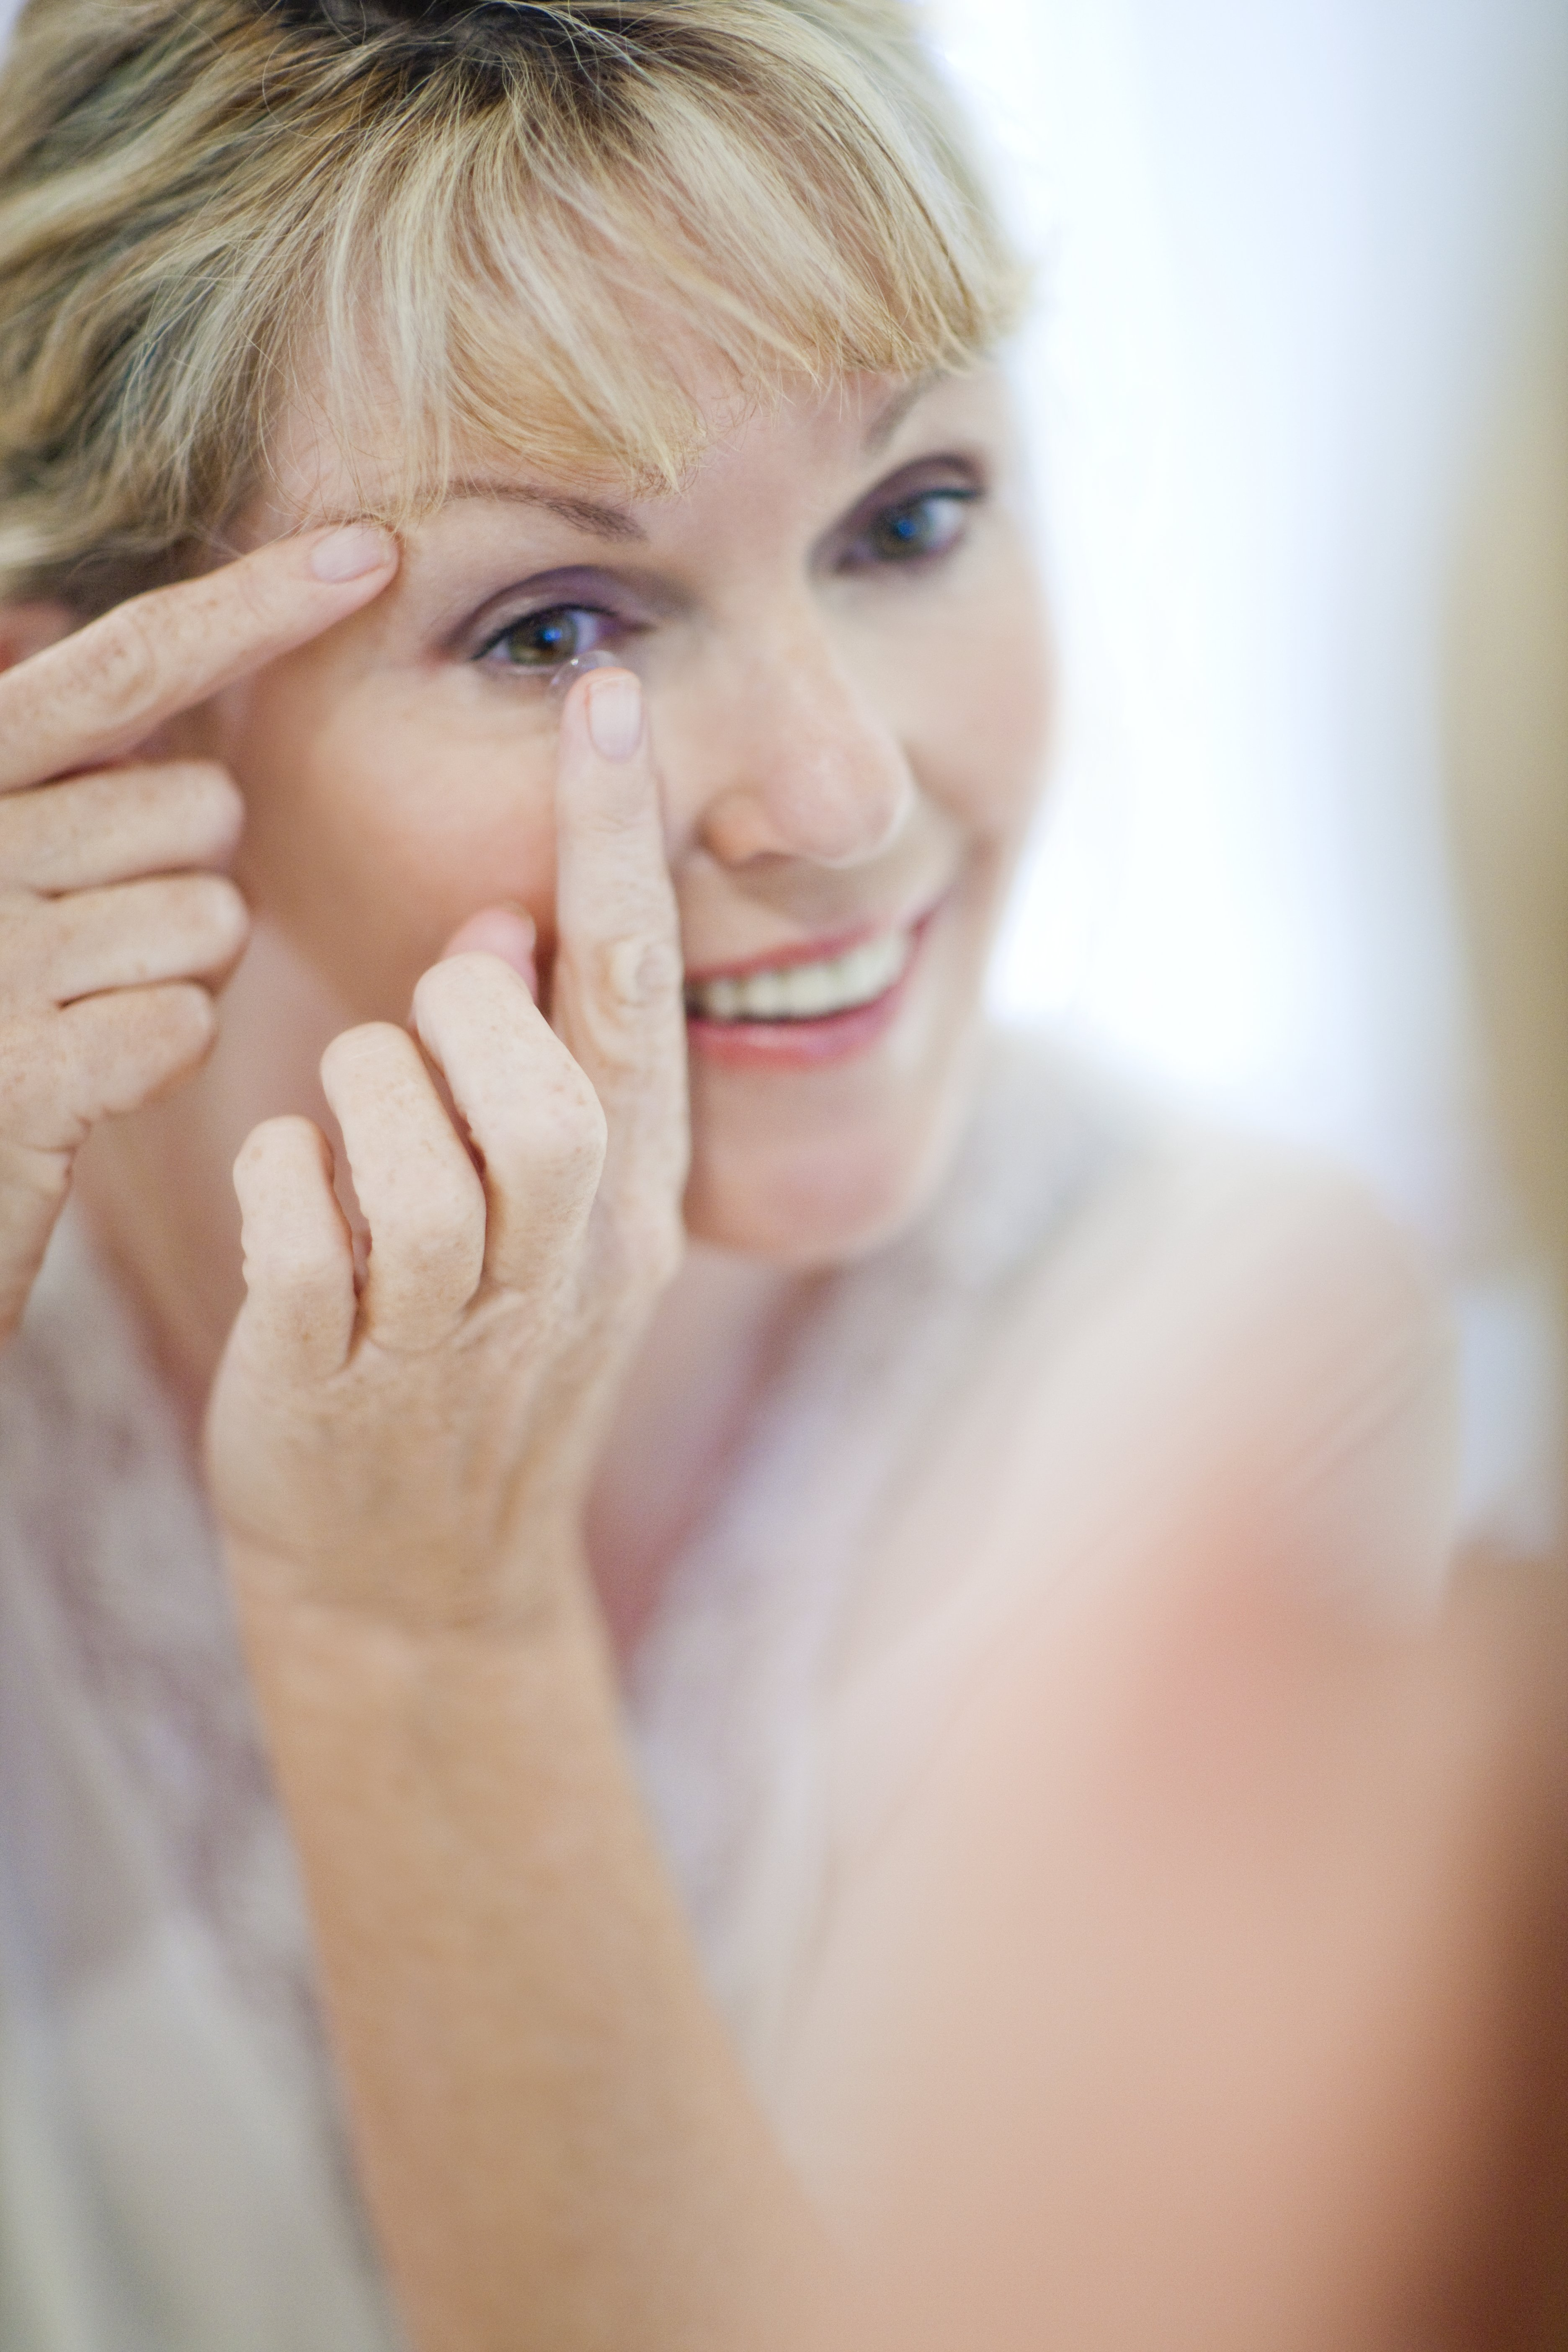 Senior woman looking at her reflection in the mirror while putting in contact lenses.